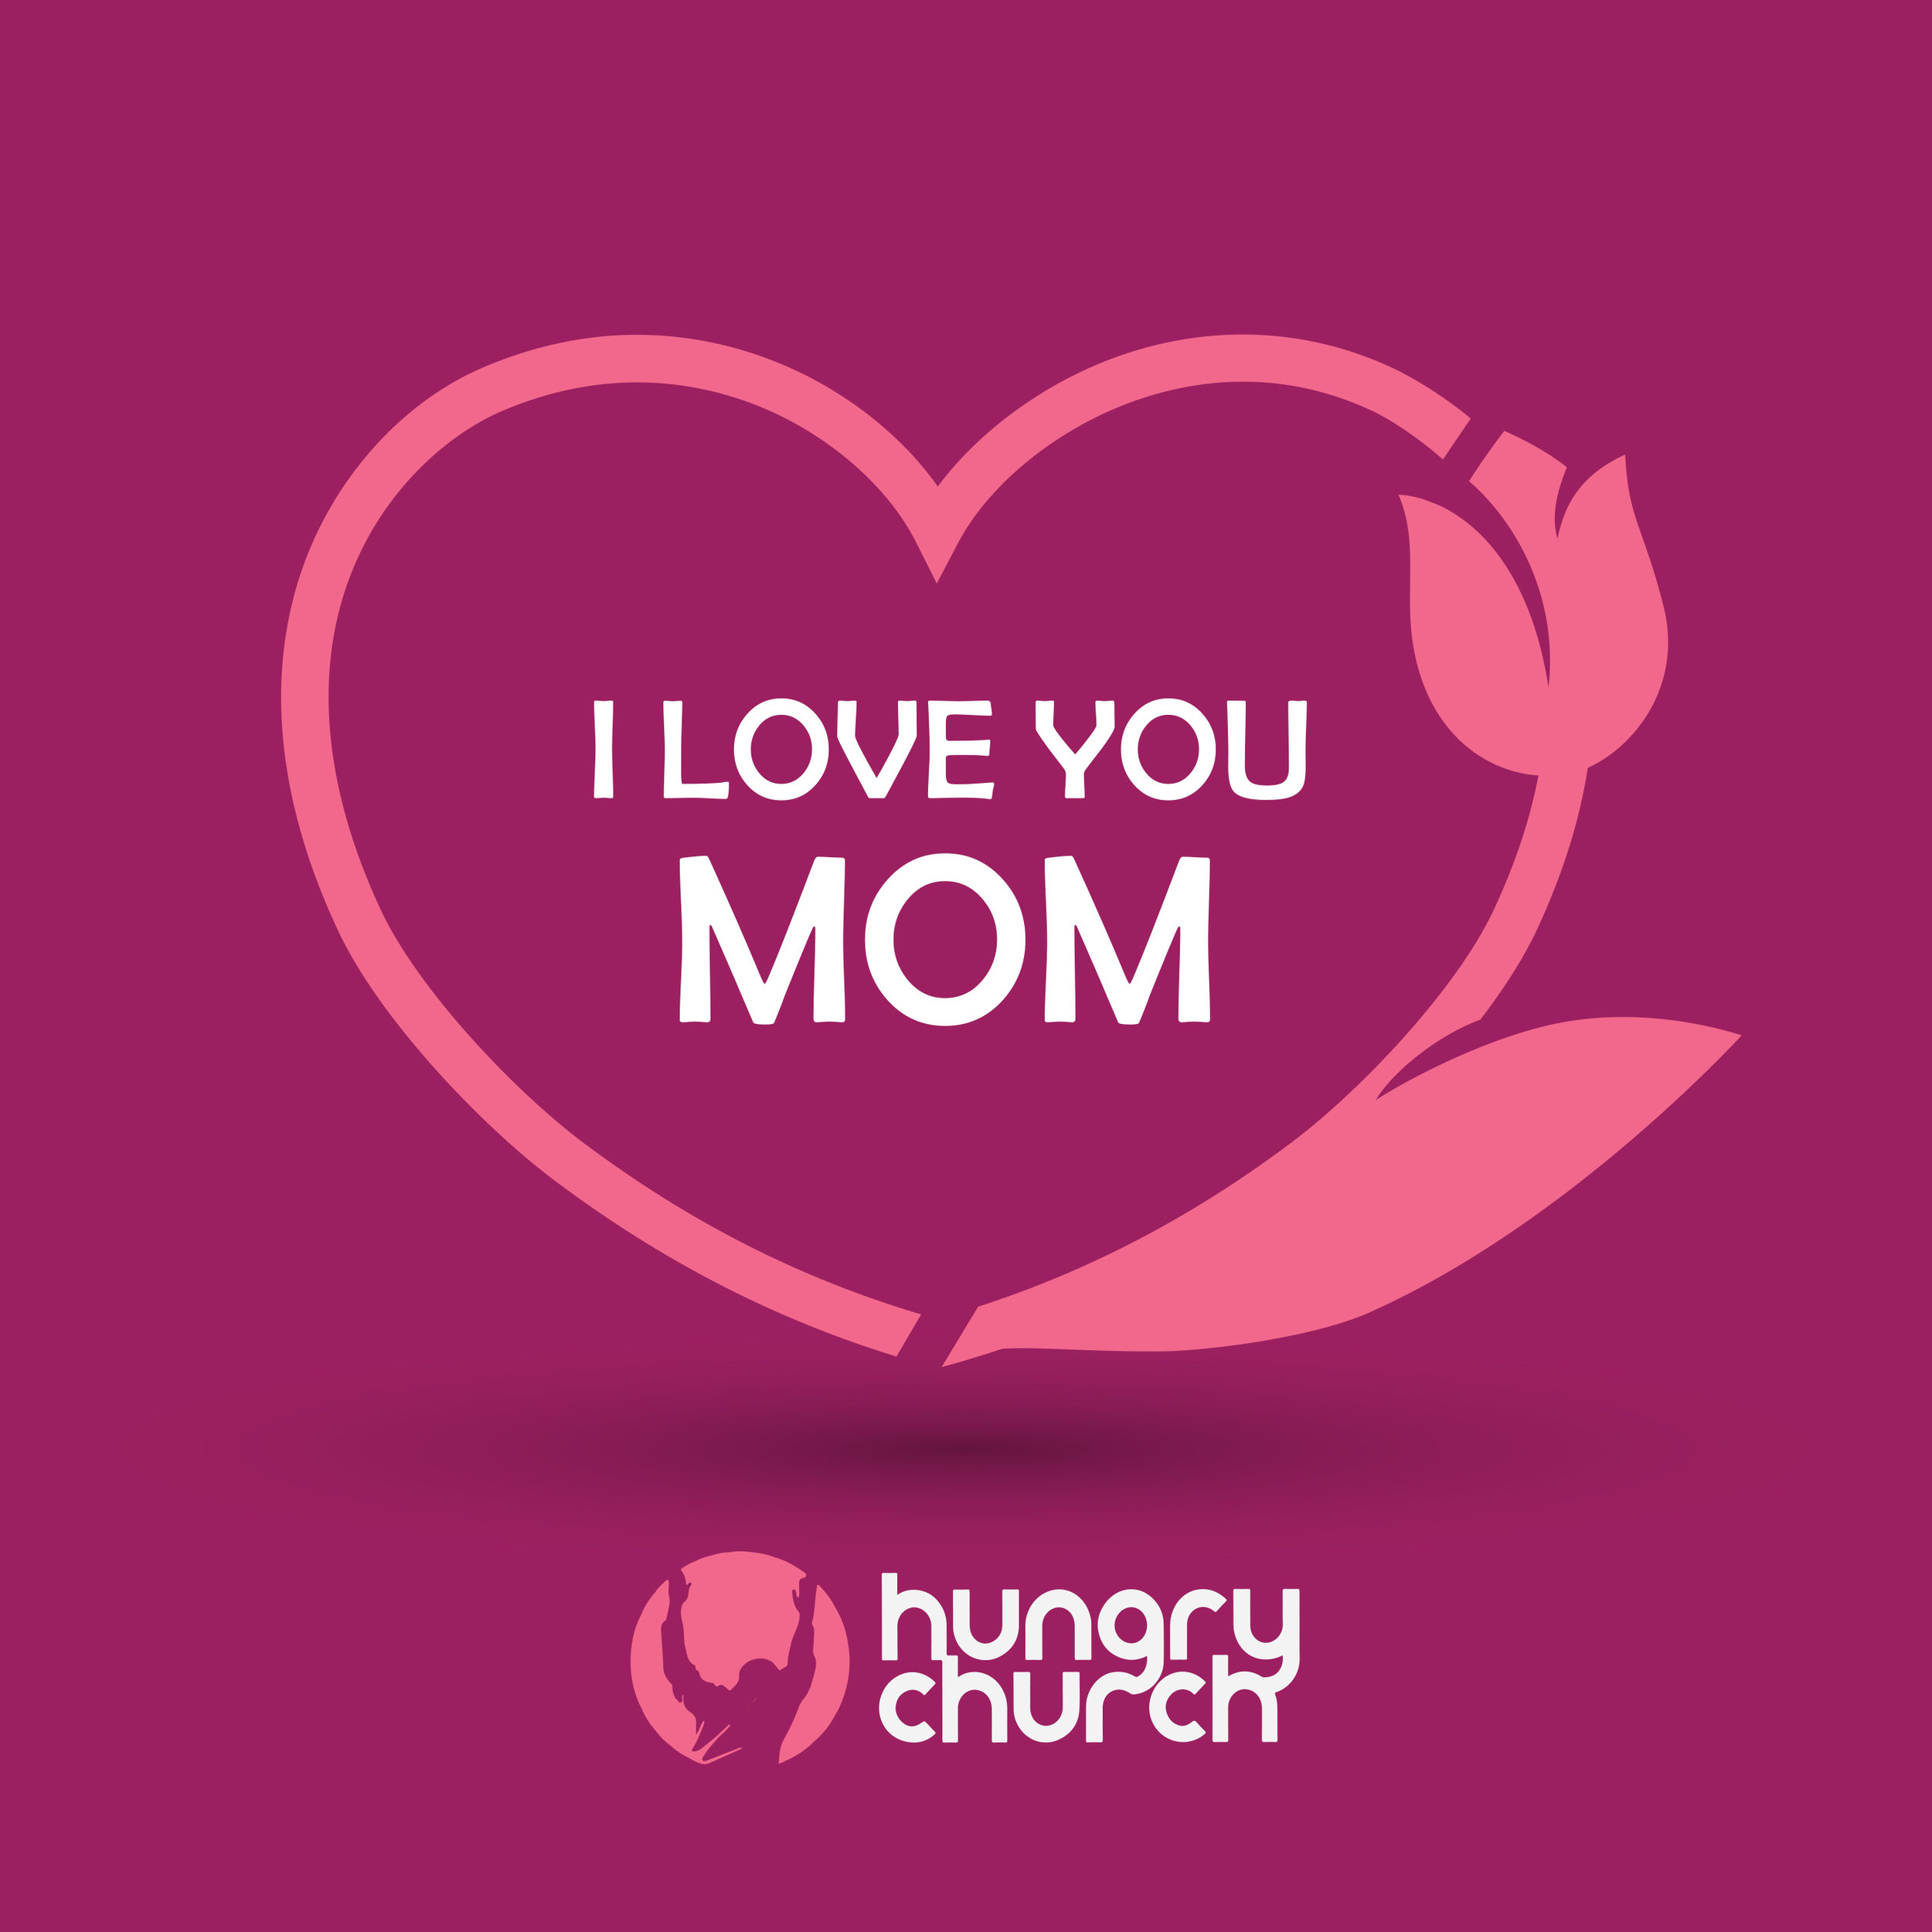 HUNGRY CHURCH mothers day-4.jpg